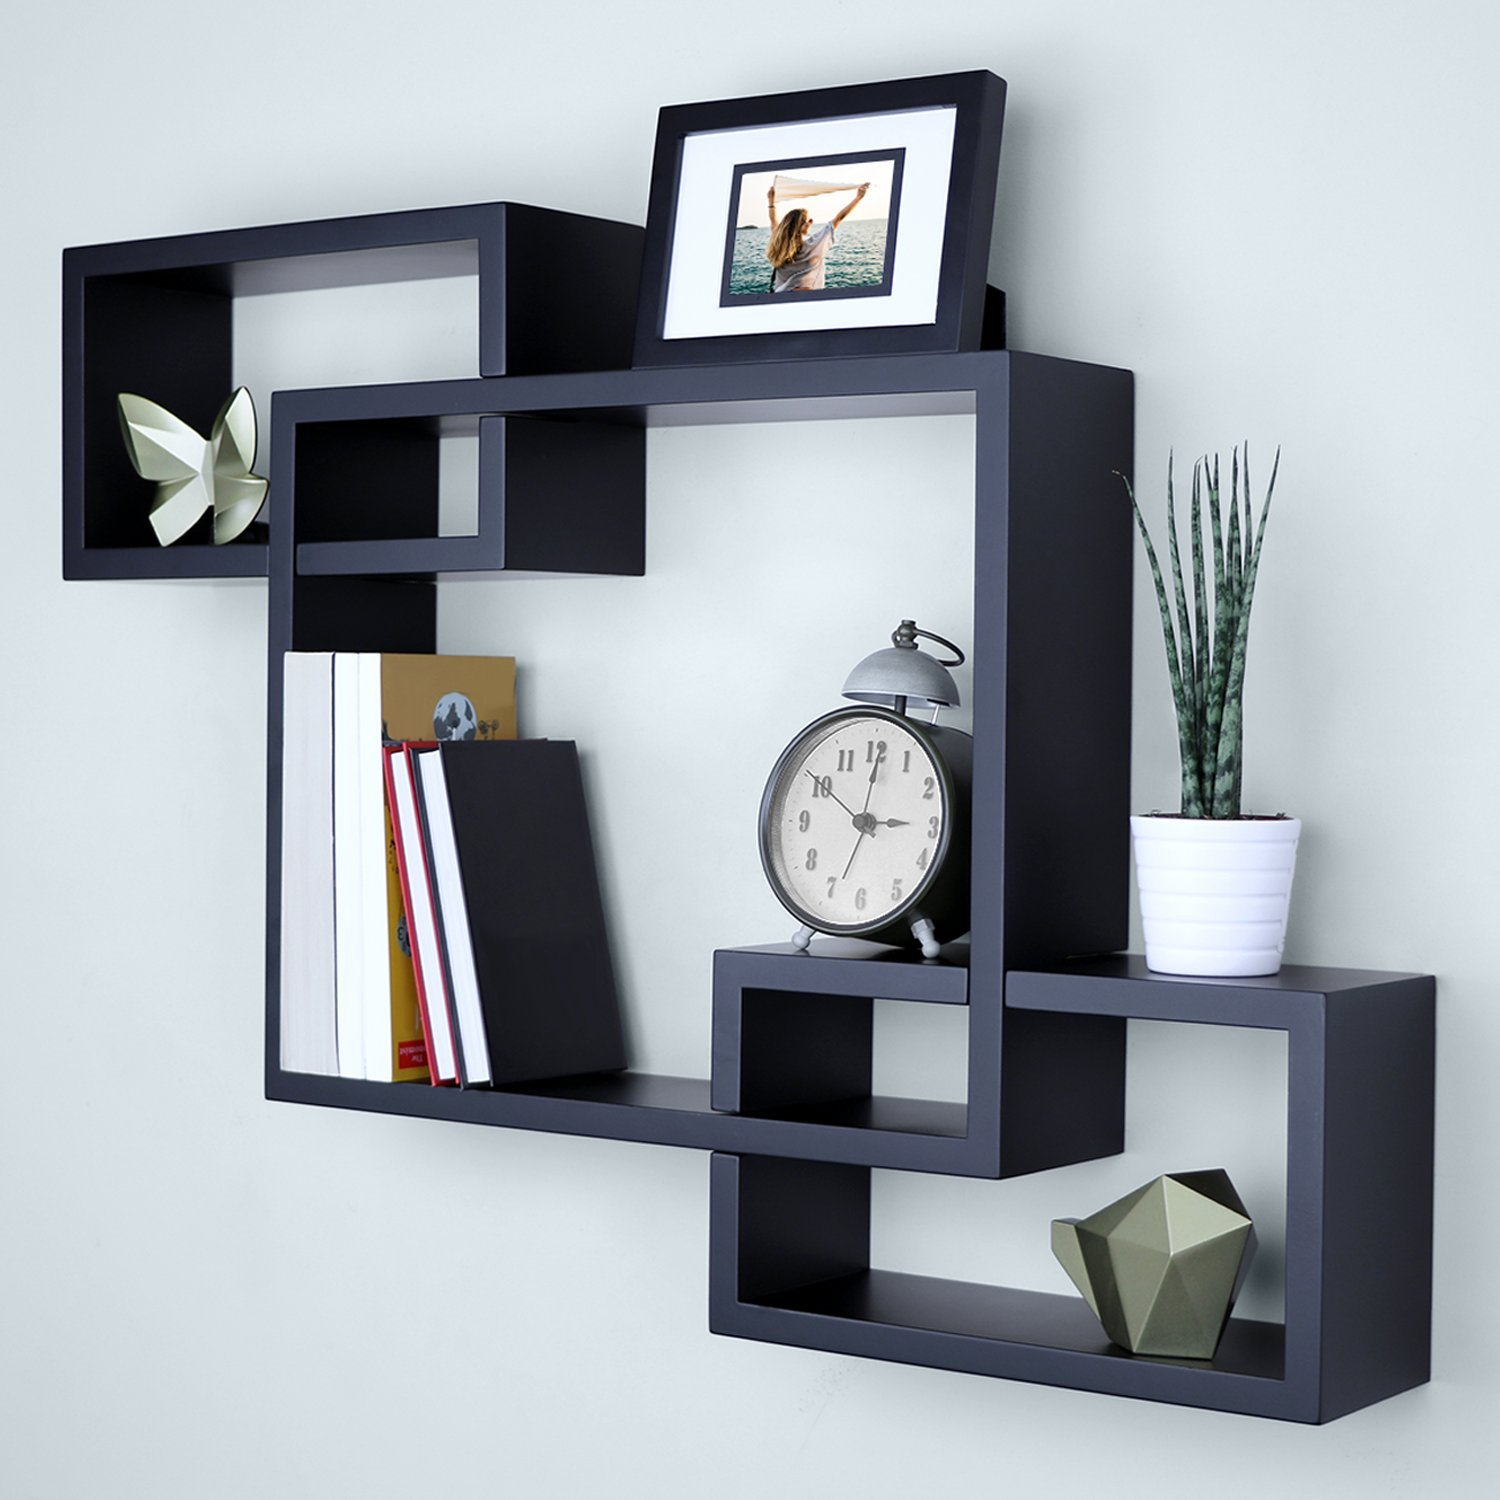 Ballucci Interweave Wall Shelves, 26'' x 18'', Black by Ballucci